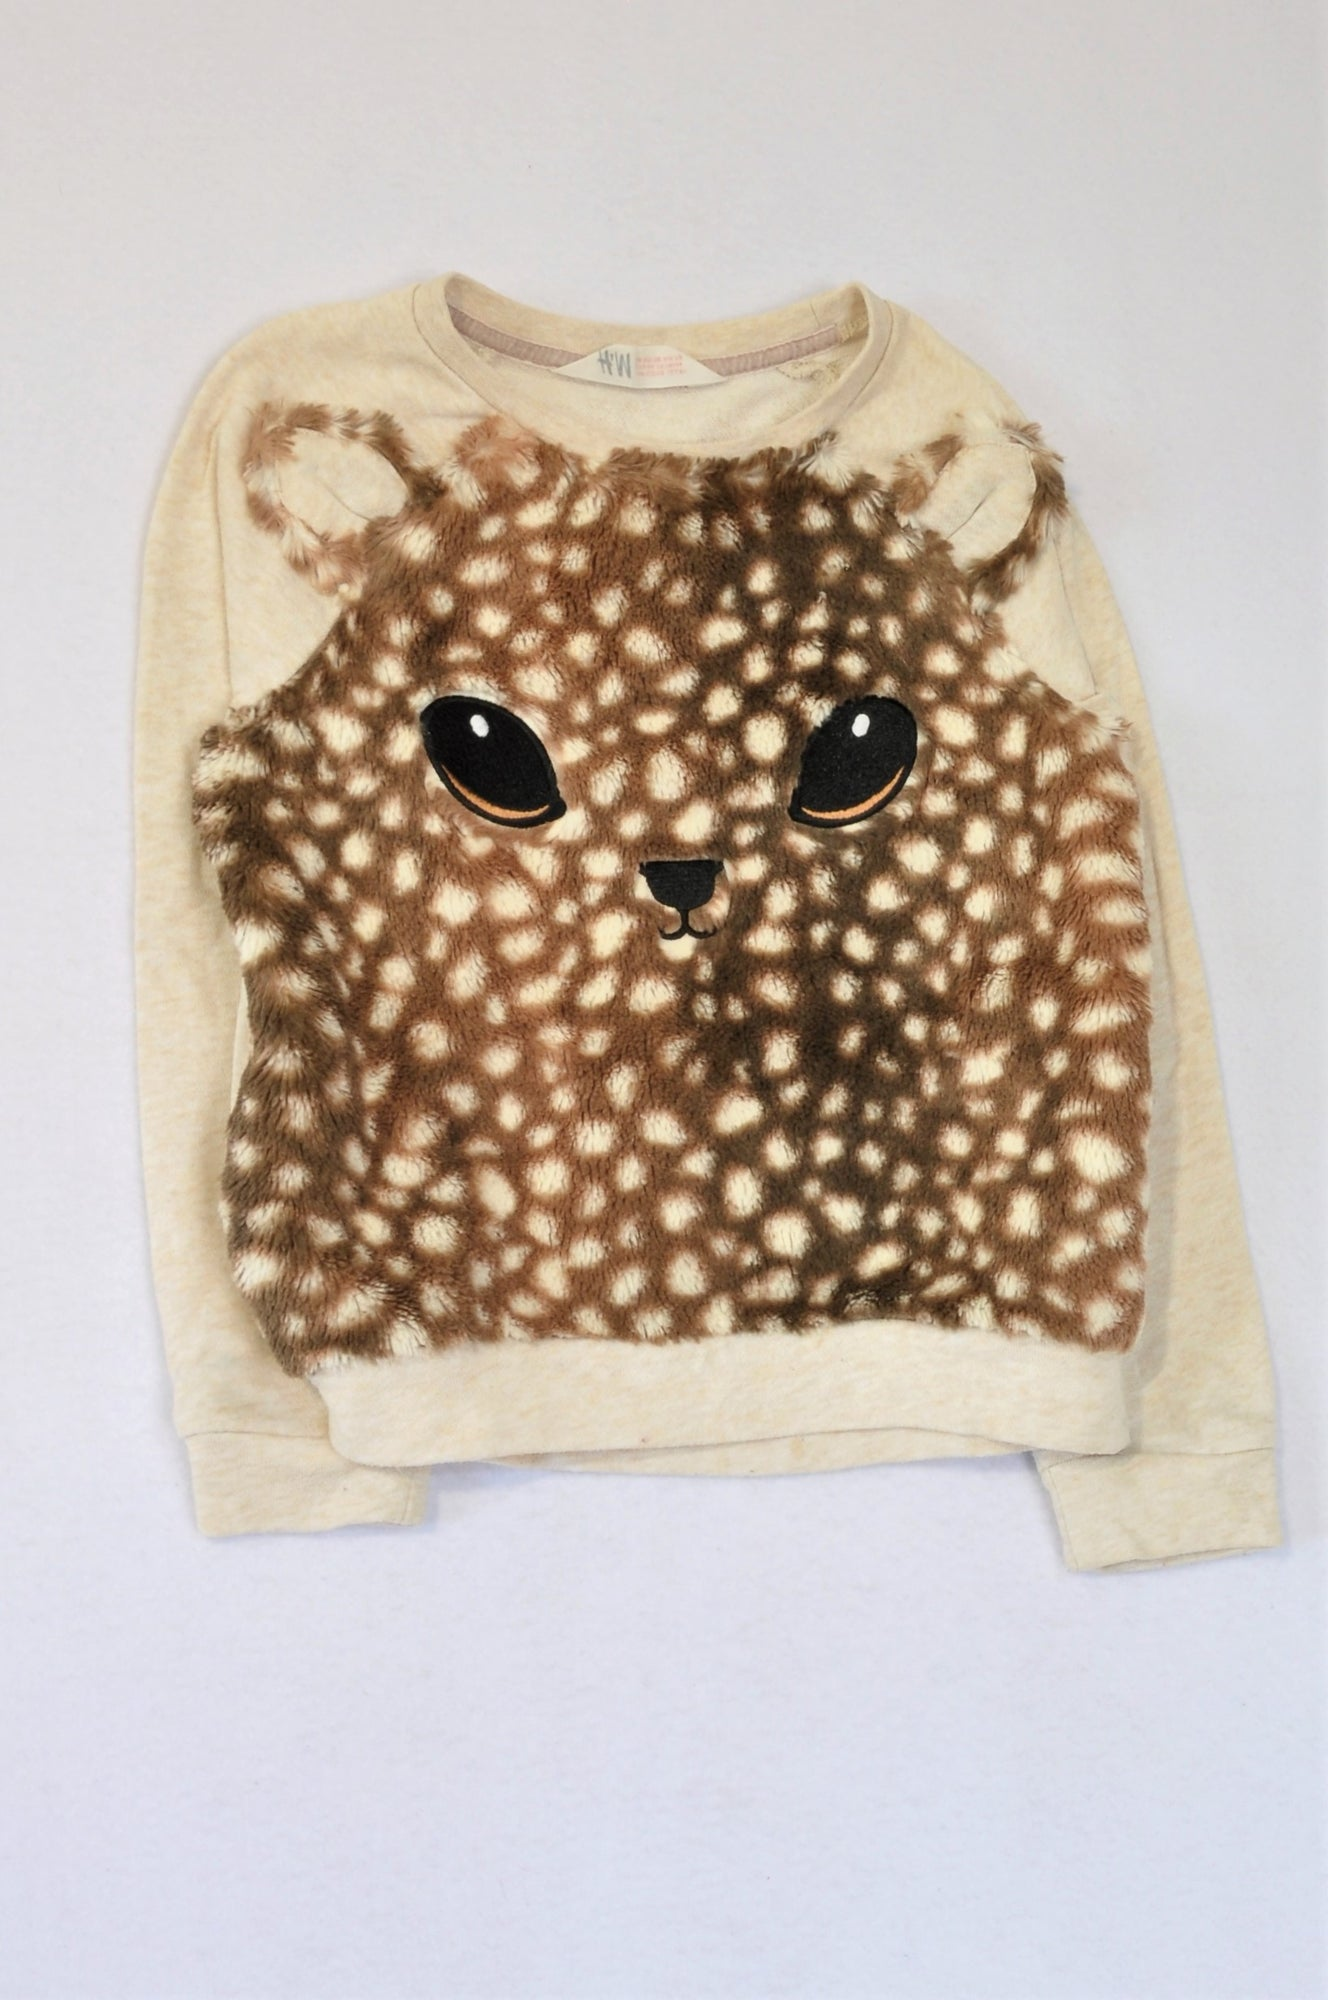 H&M Beige & Brown Fleece Deer Pull Over Top Girls 6-8 years